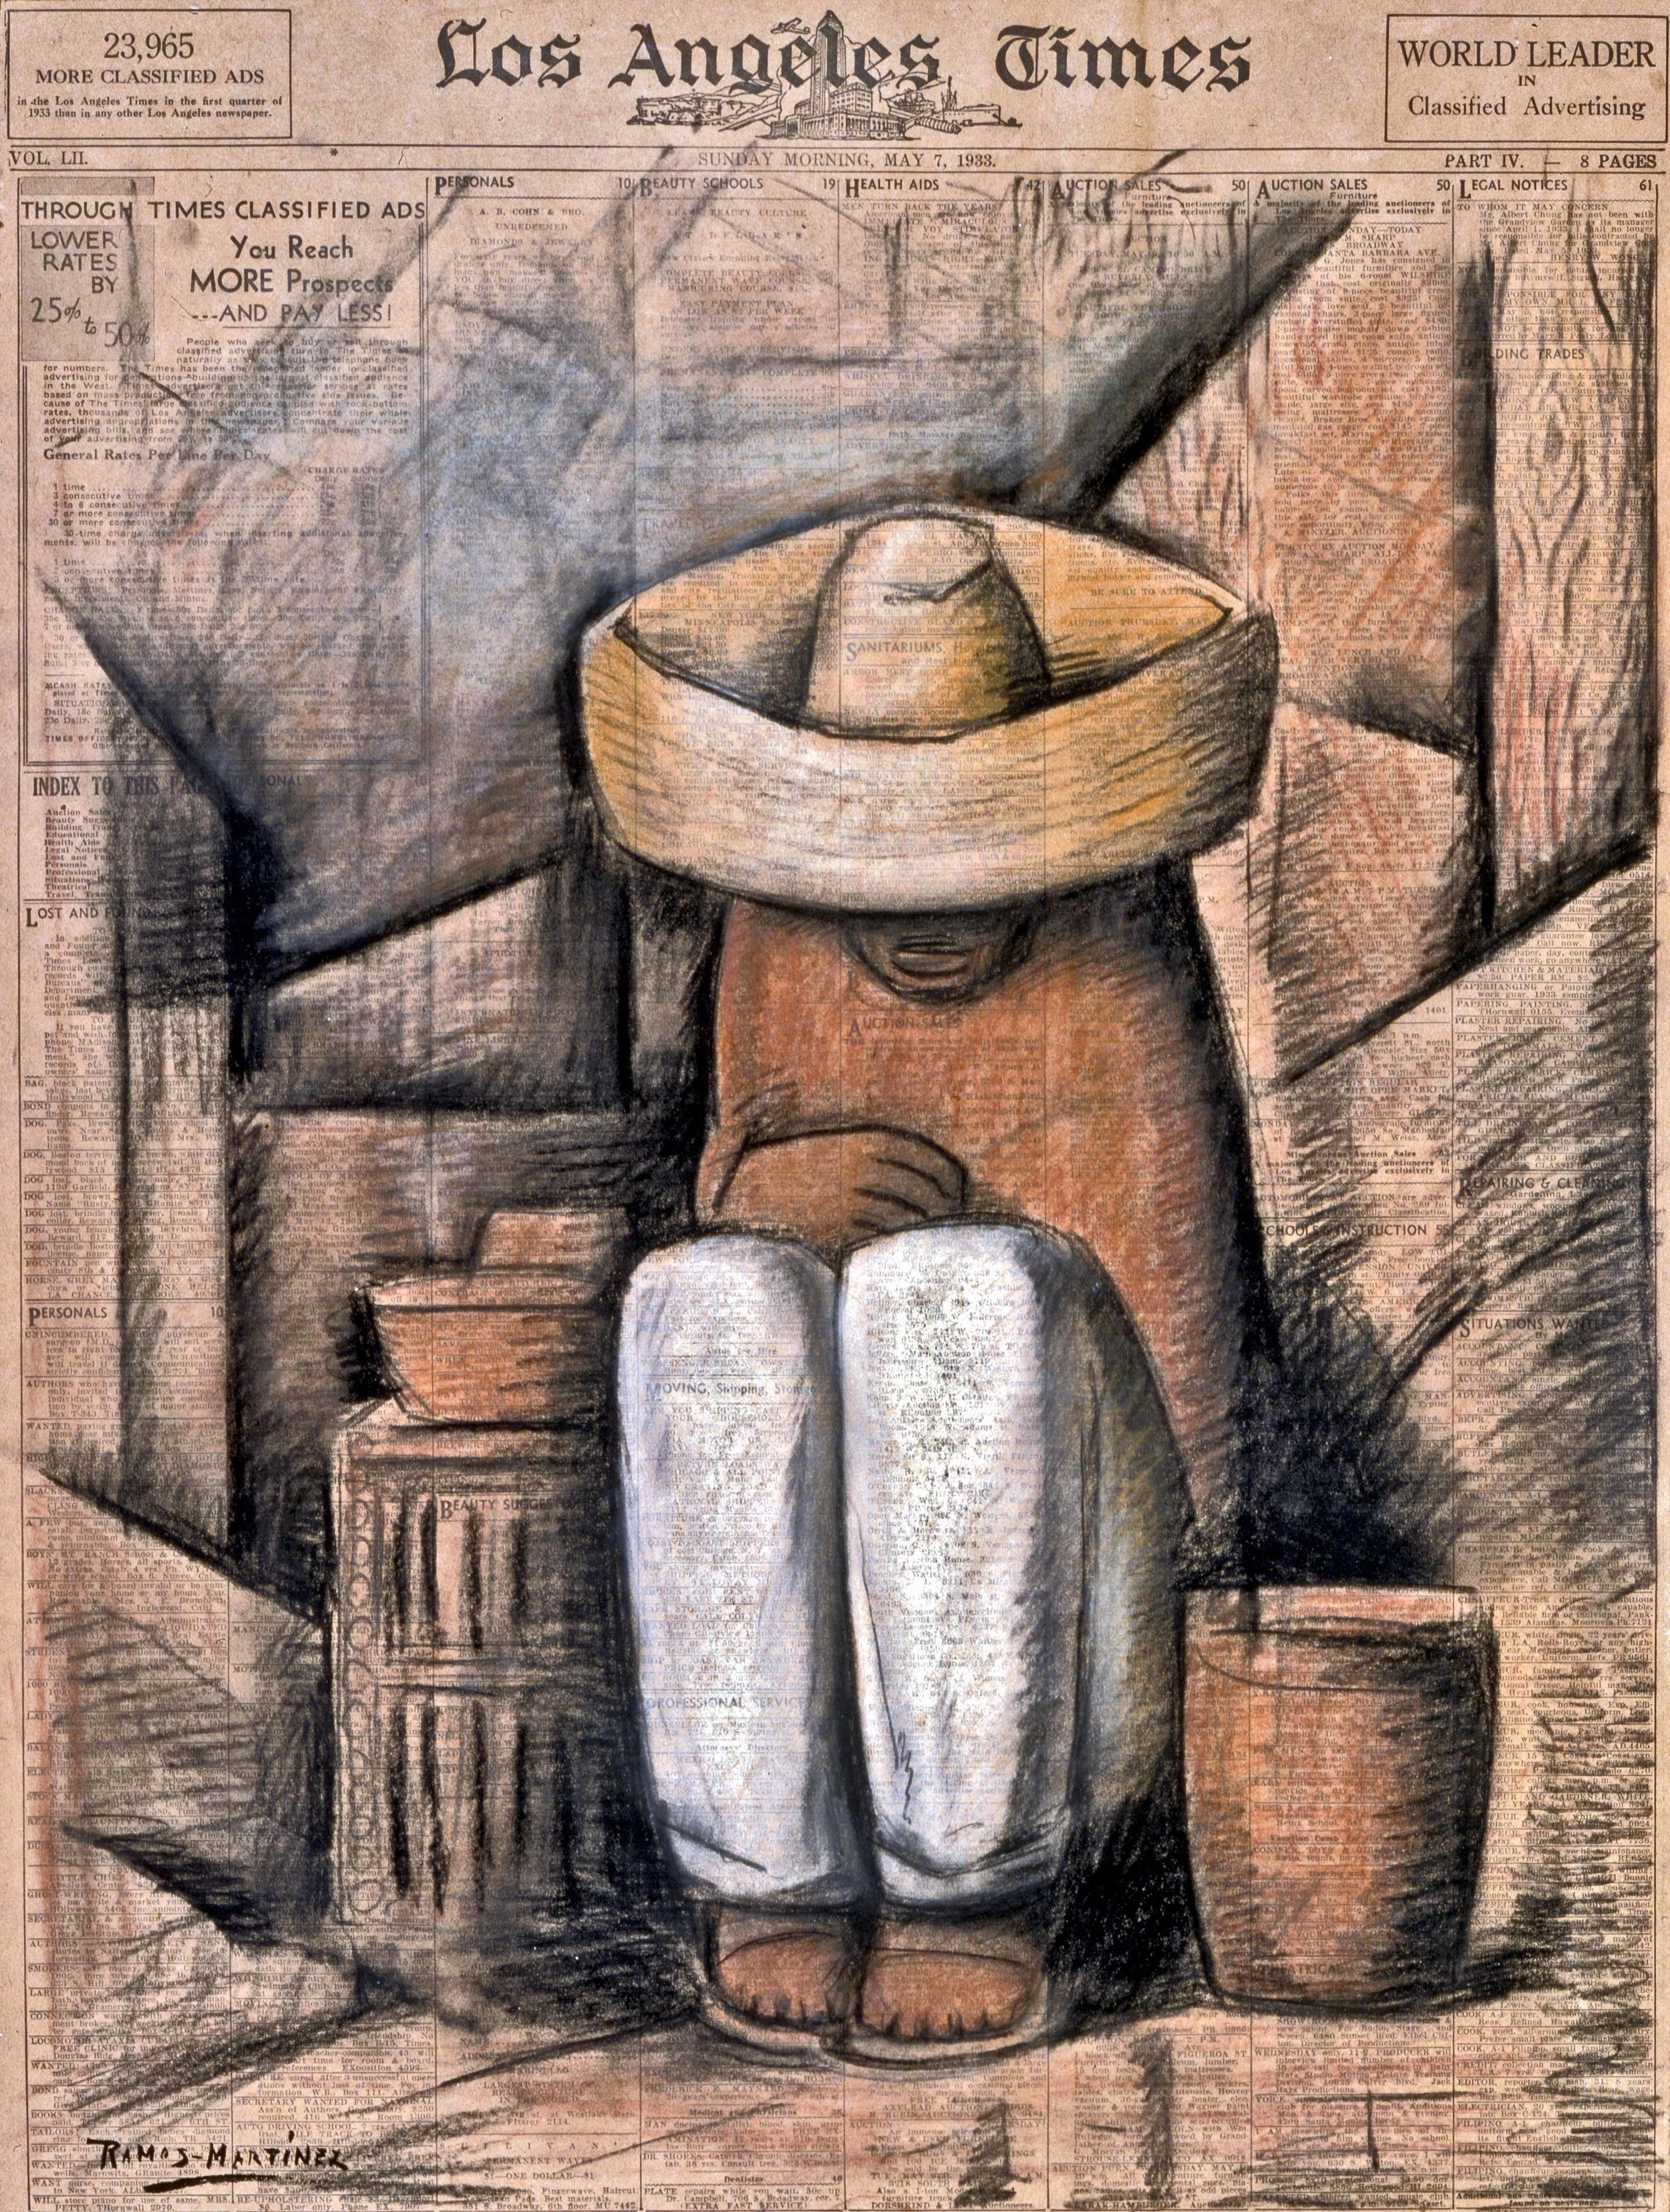 Sin Título / Untitled  1933 charcoal and pastel on newsprint / carbón y pintura al pastel sobre papel periódico (Los Angeles Times, Sunday, May 7, 1933) 22.8 x 17 inches; 57.8 x 43.2 centímetros Private collection